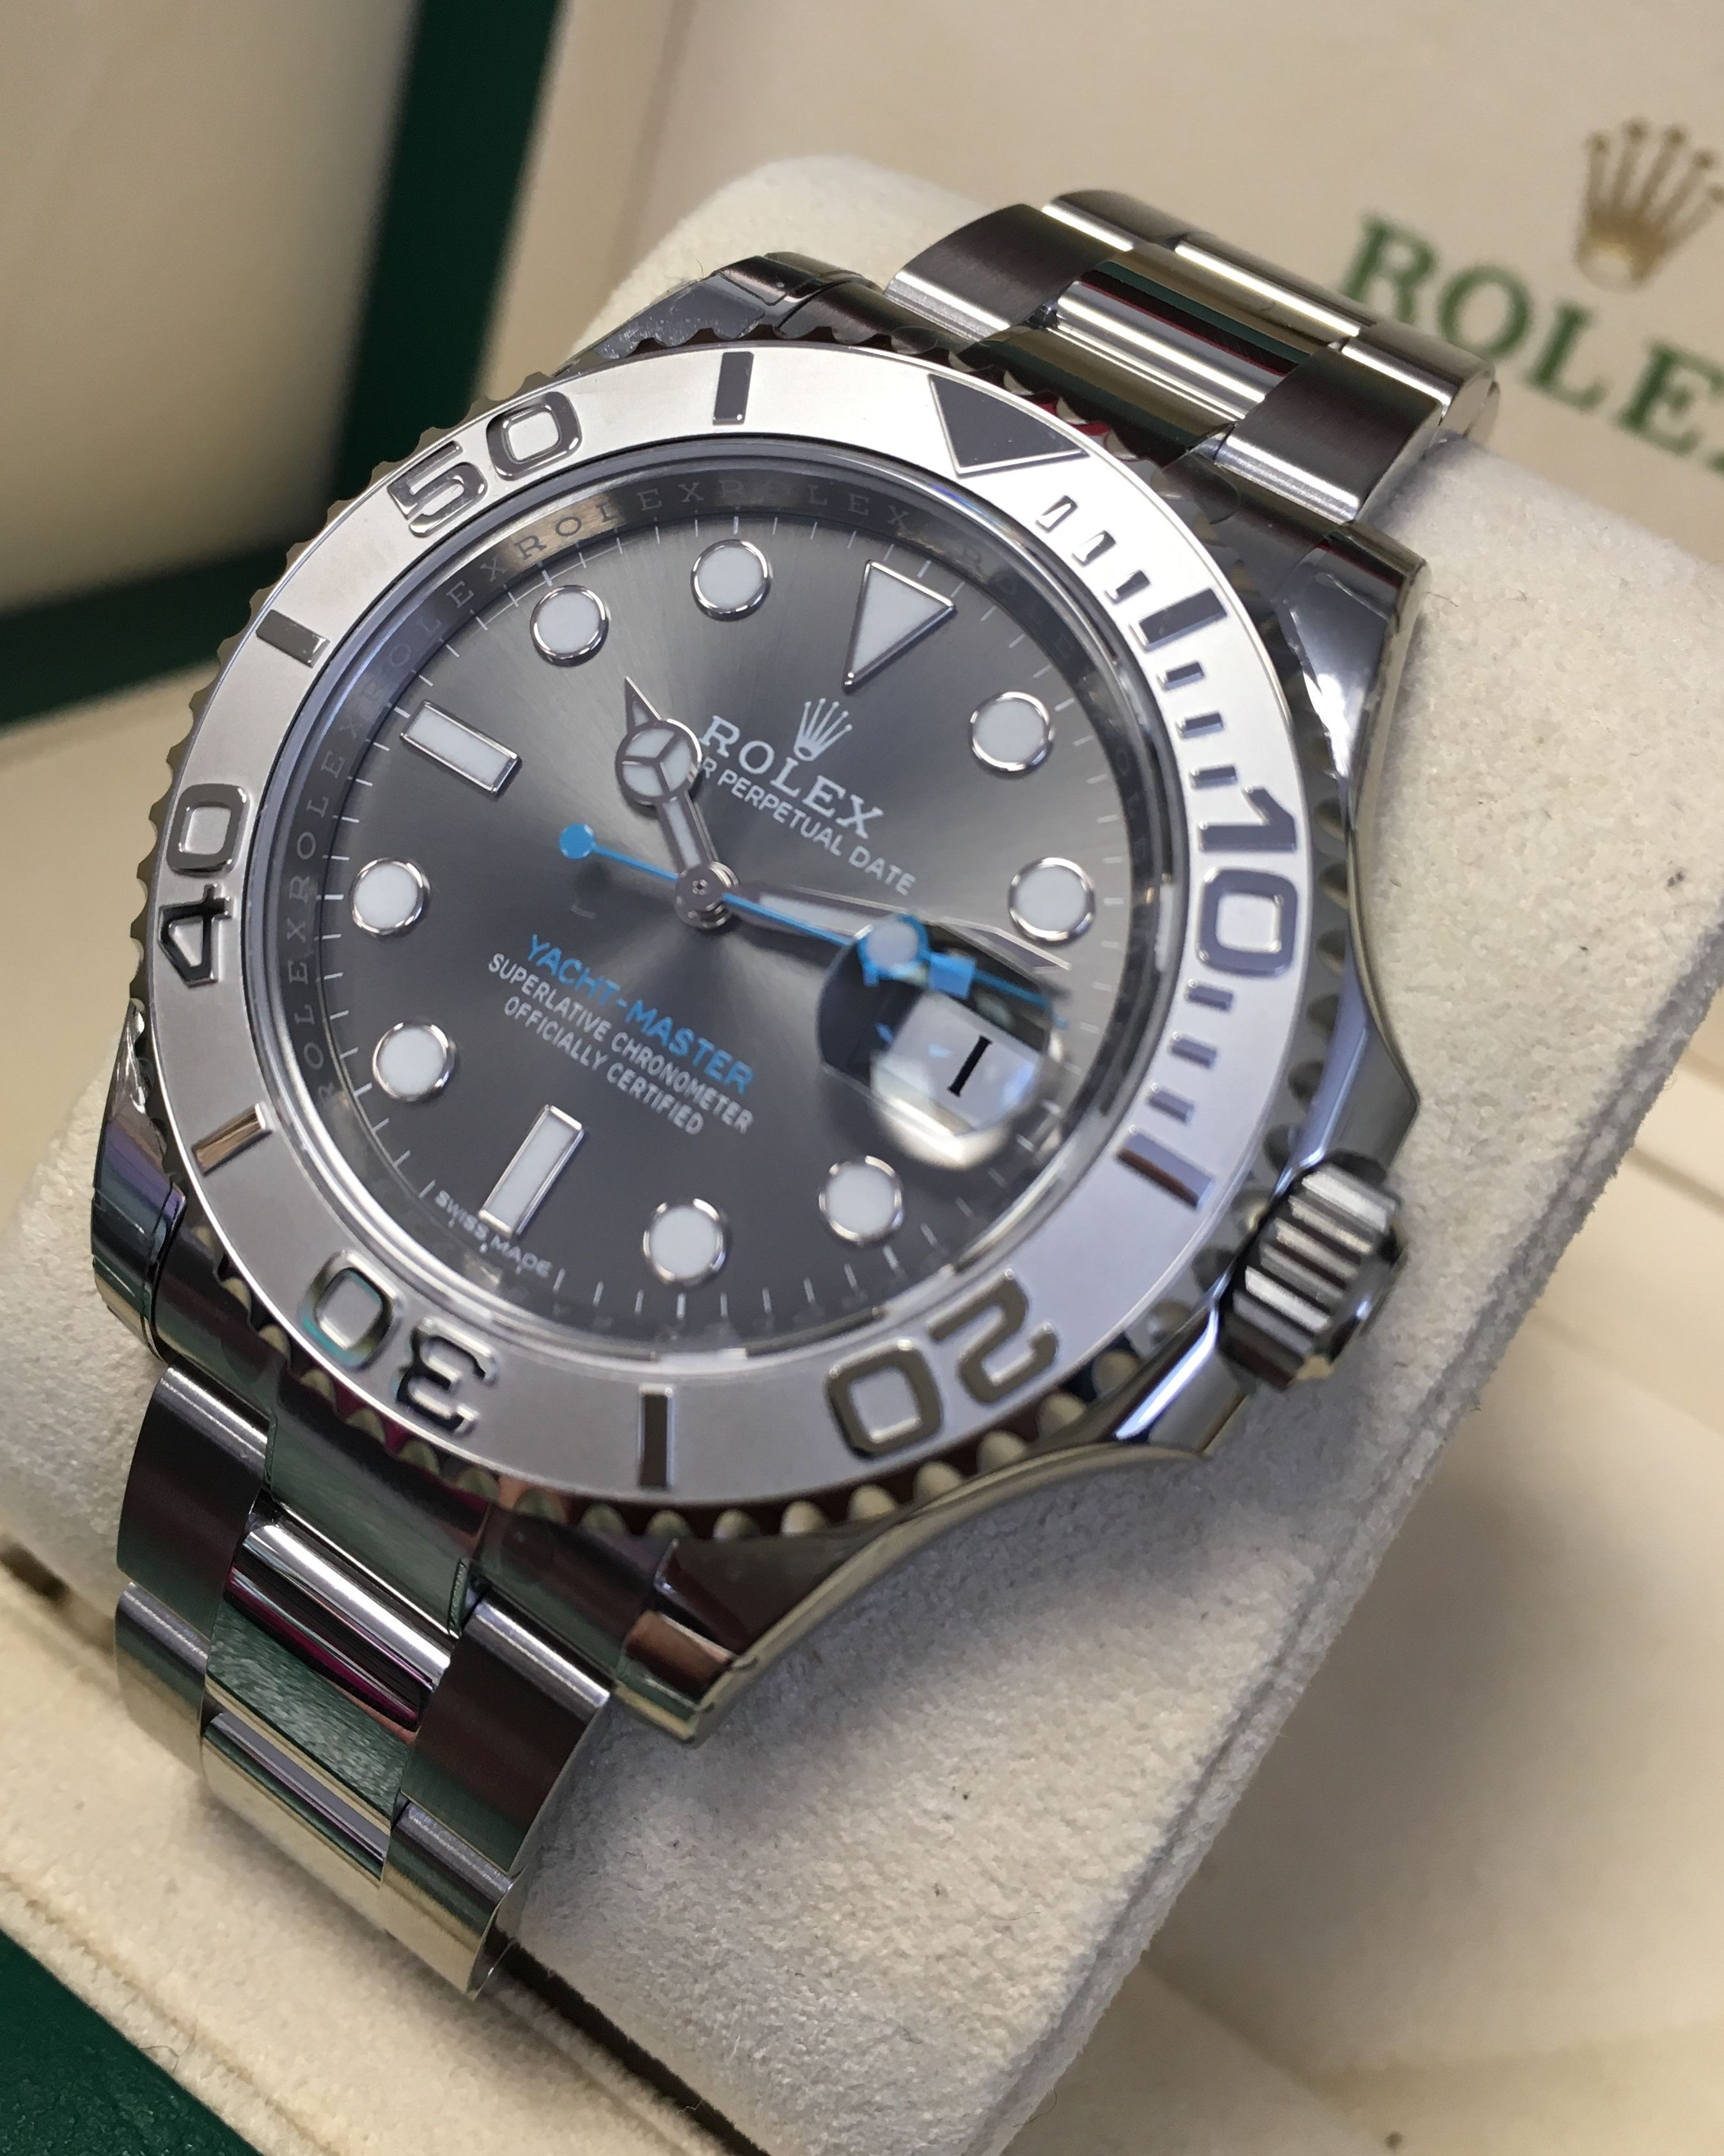 Rolex Yacht Master Rhodium Dial 116622 Timing Is Everything